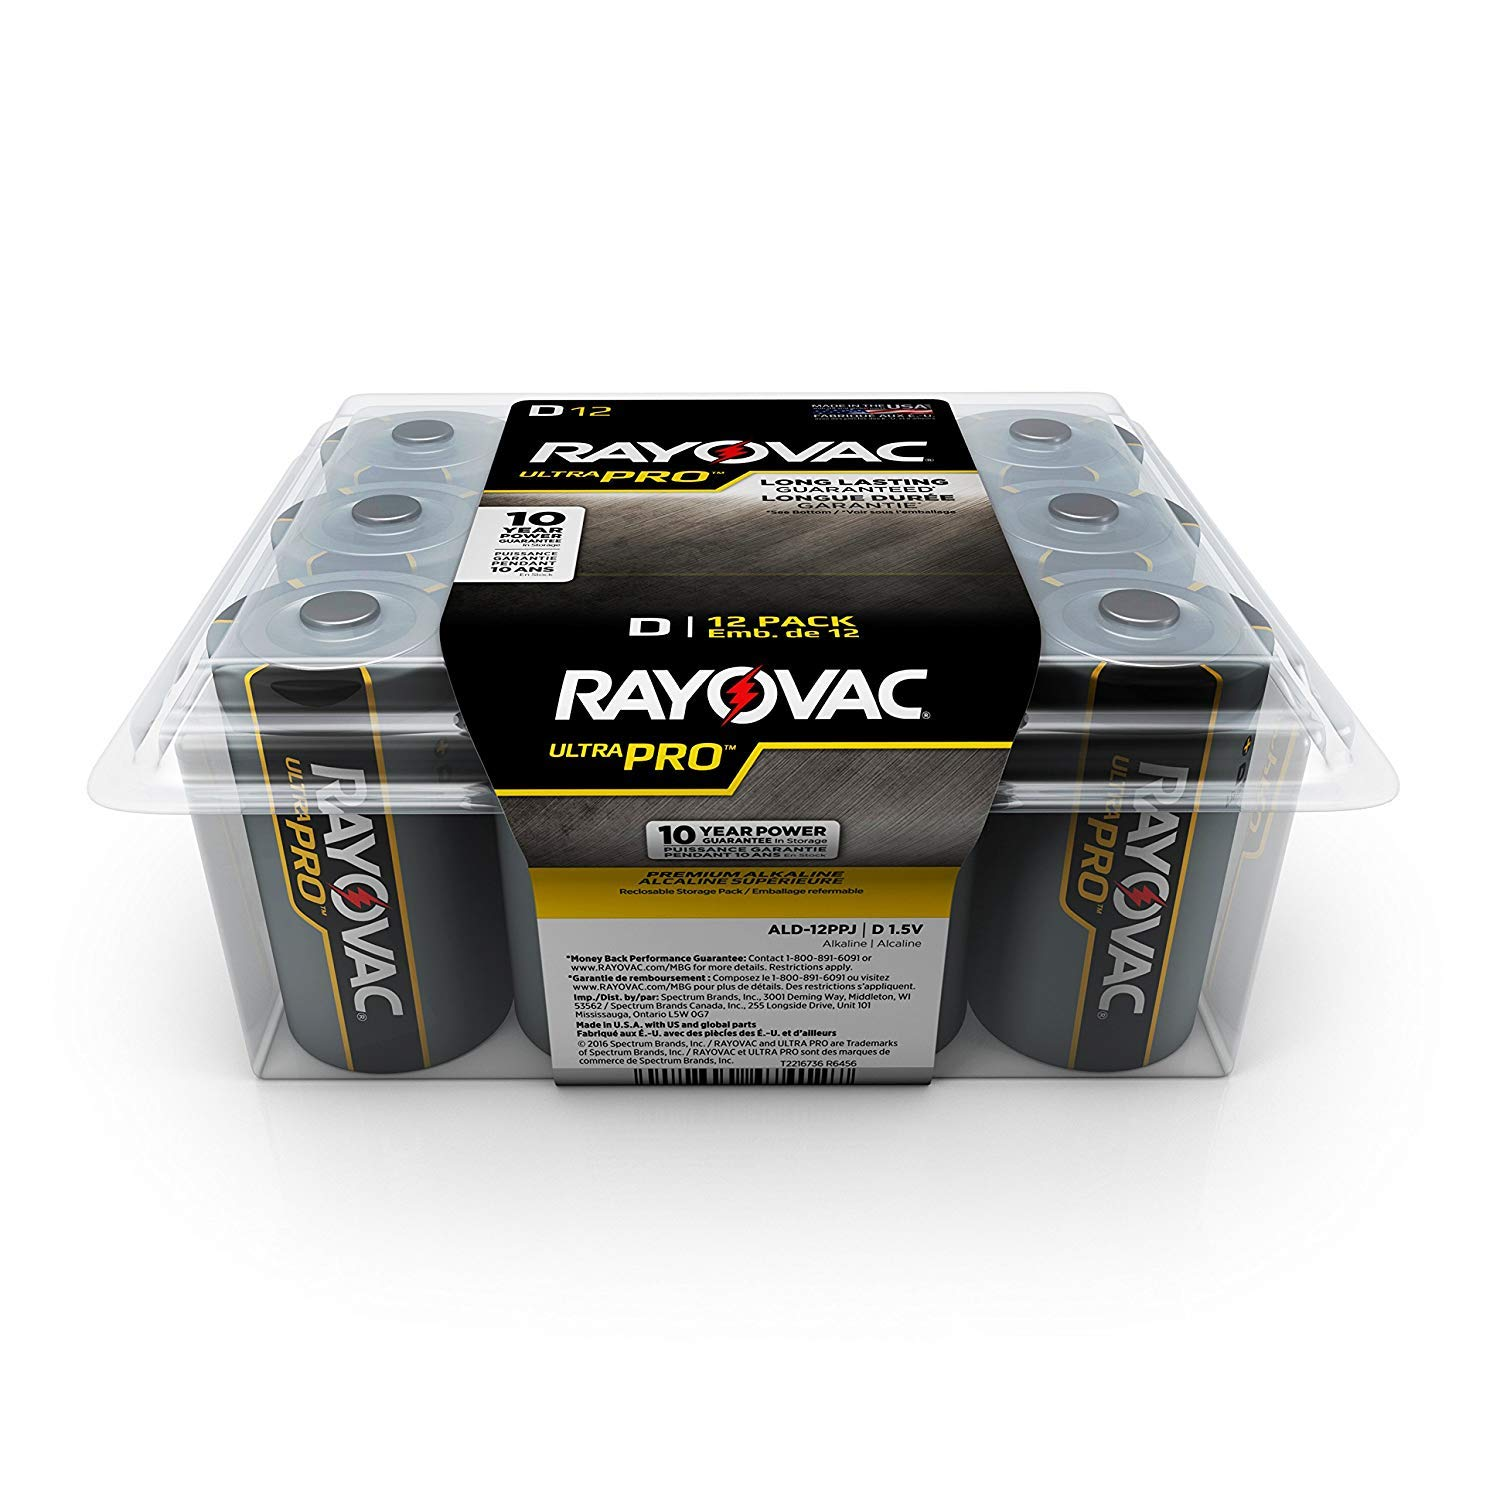 Rayovac D Batteries, Ultra Pro Alkaline D Cell Batteries (24 Battery Count) (24 Count)